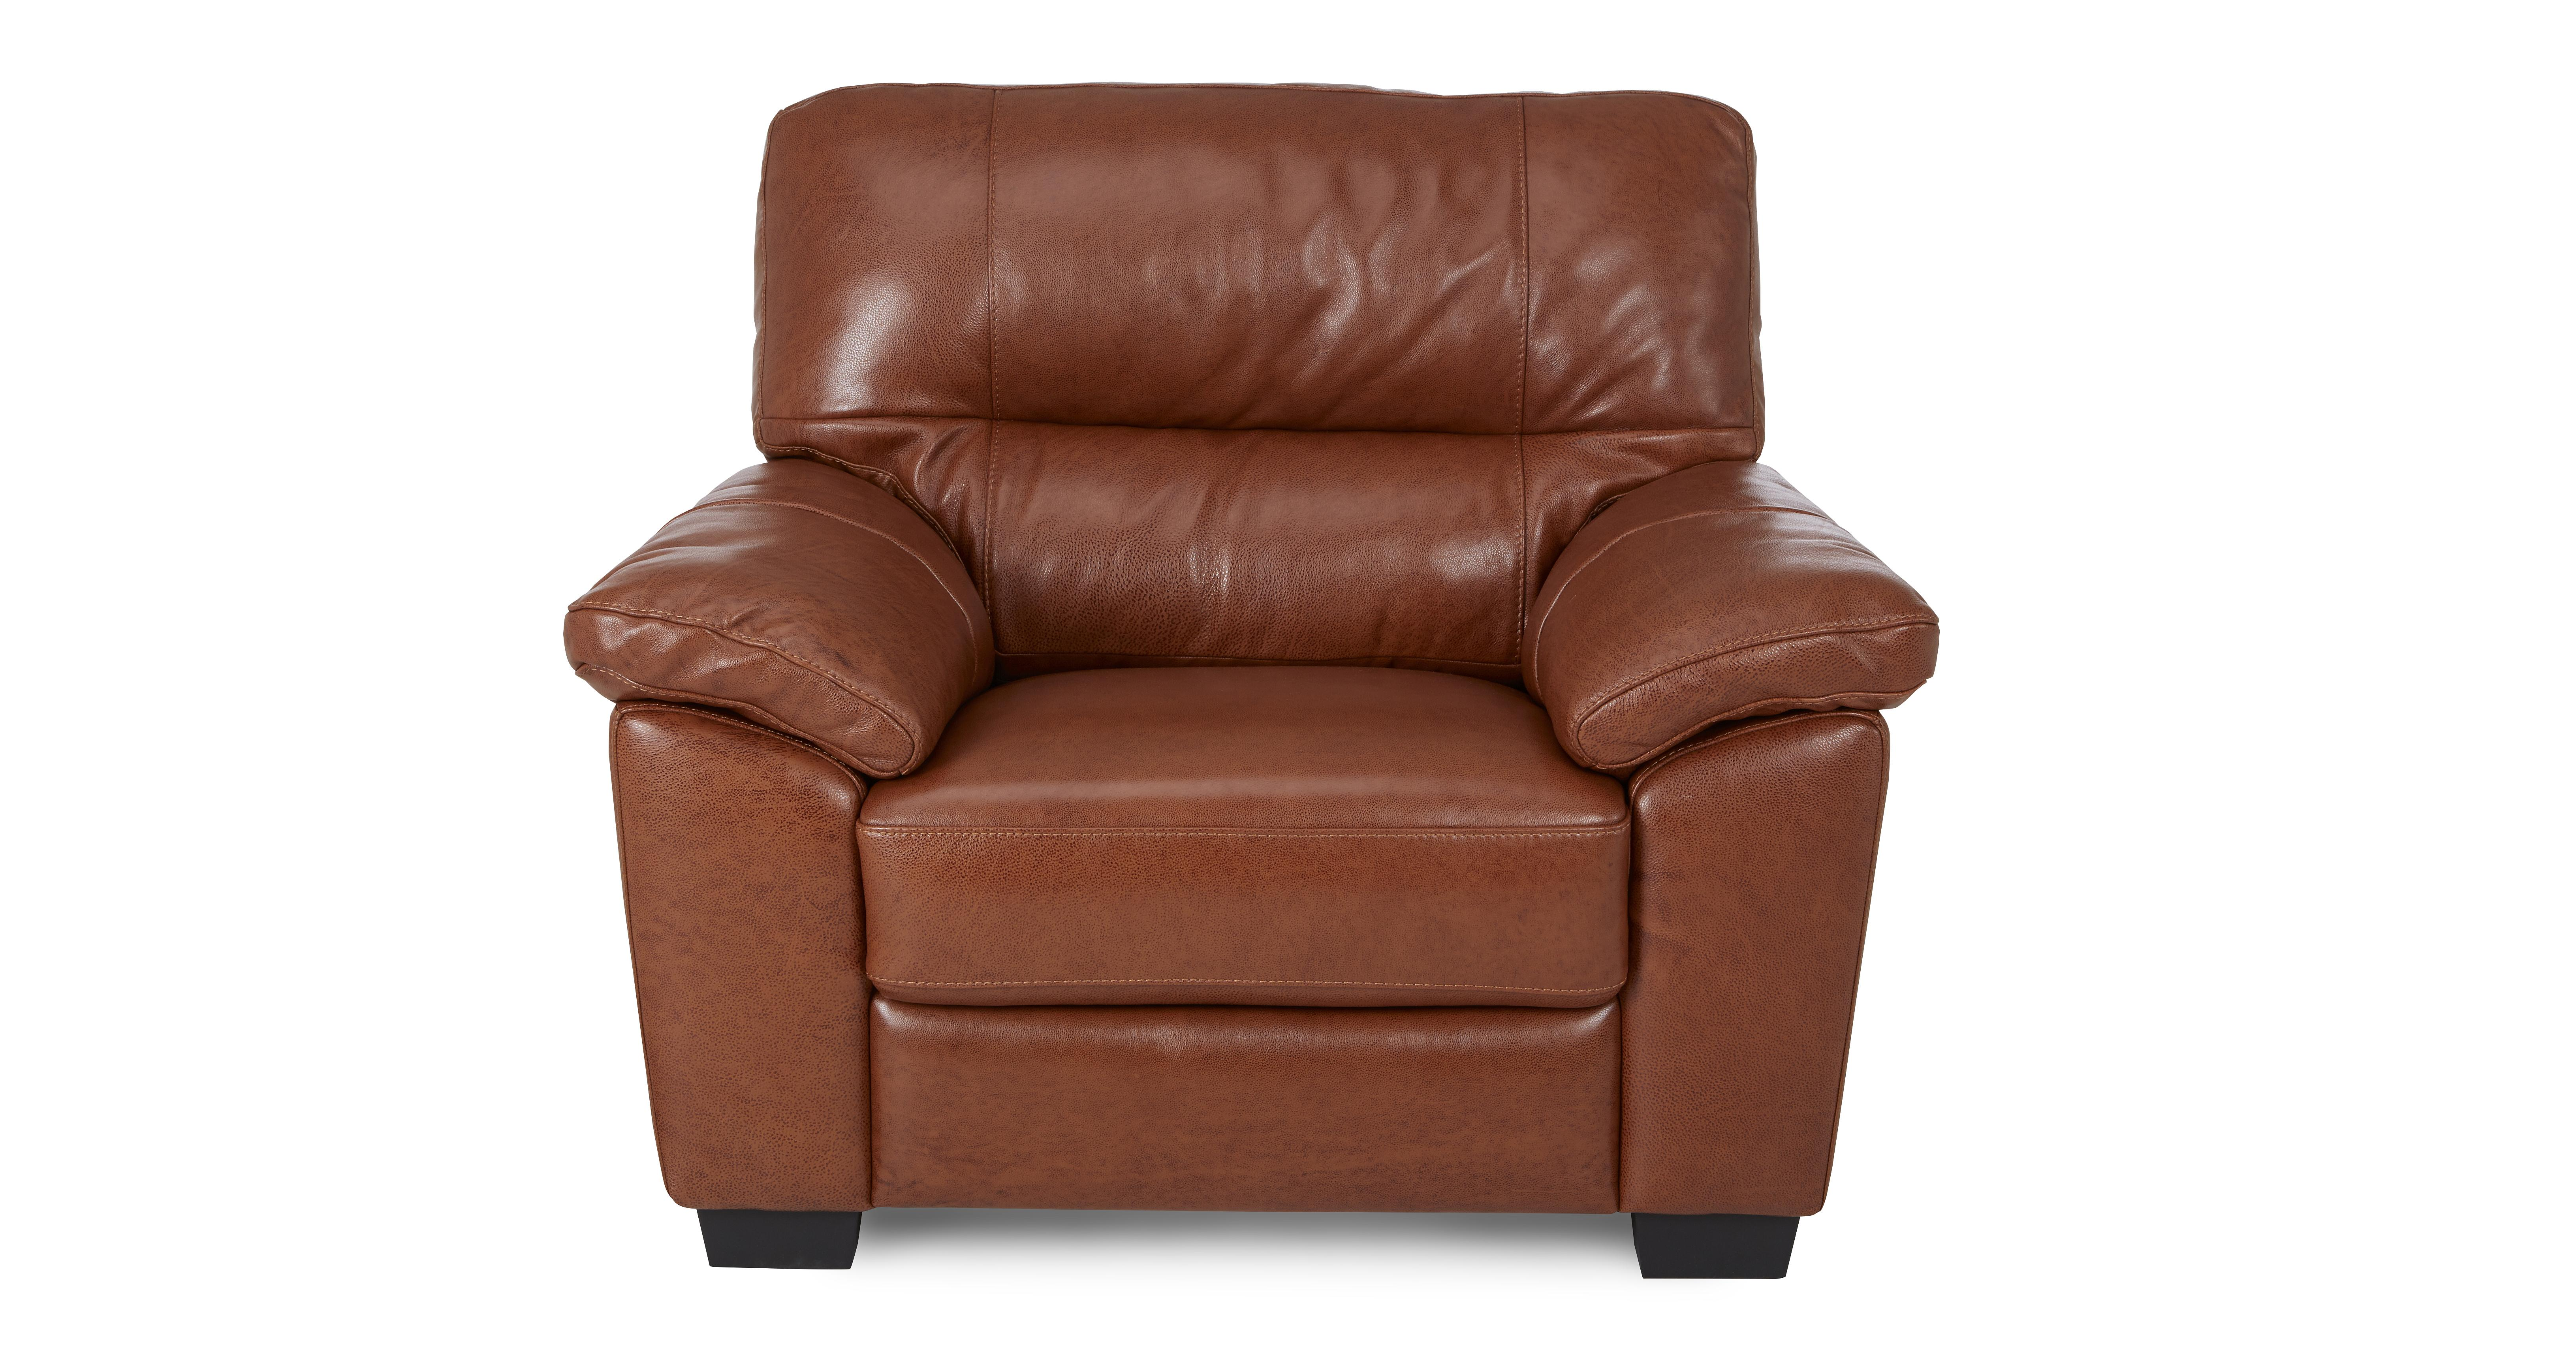 Fantastic Dalmore 3 Seater Sofa Pdpeps Interior Chair Design Pdpepsorg